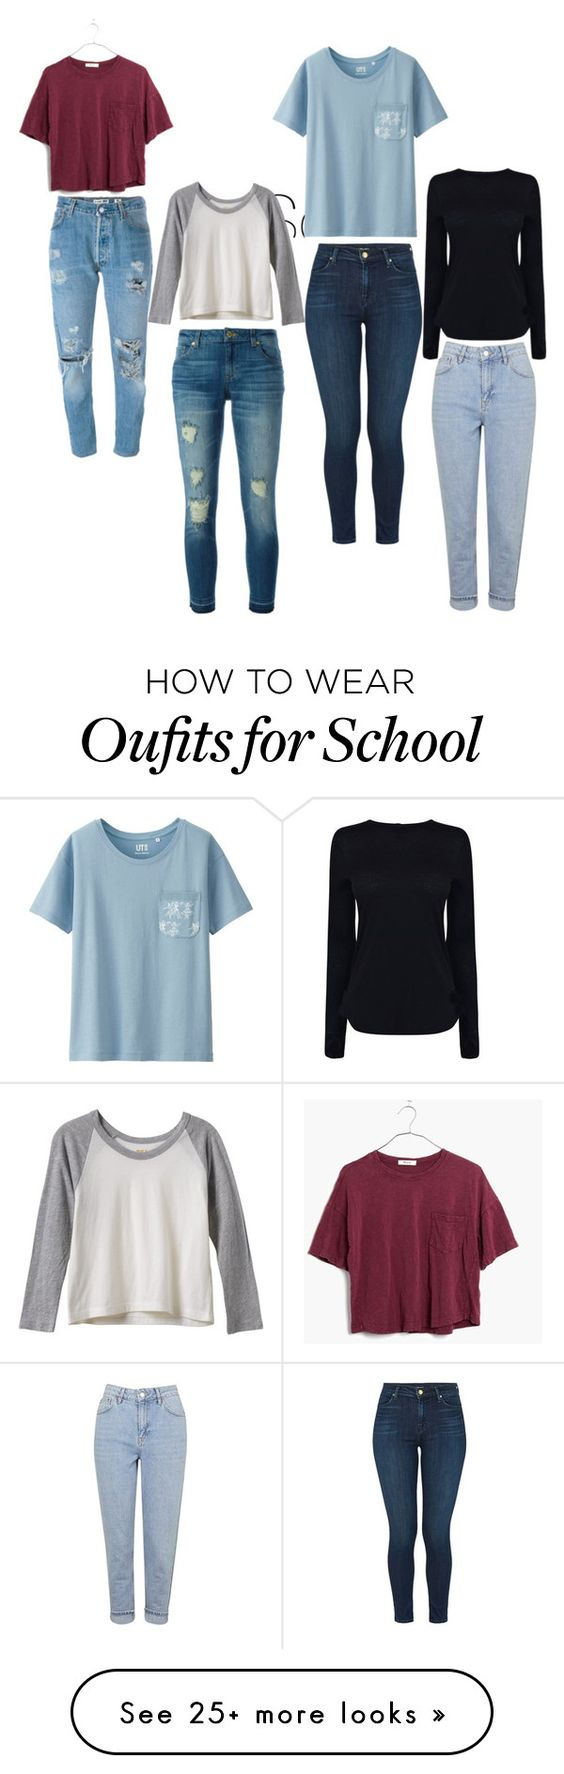 """""""Back to School Inspiration"""" by emiipear on Polyvore featuring Uniqlo, Madewell, RVCA, Levi's, MICHAEL Michael Kors, J Brand, Topshop and Helmut Lang"""